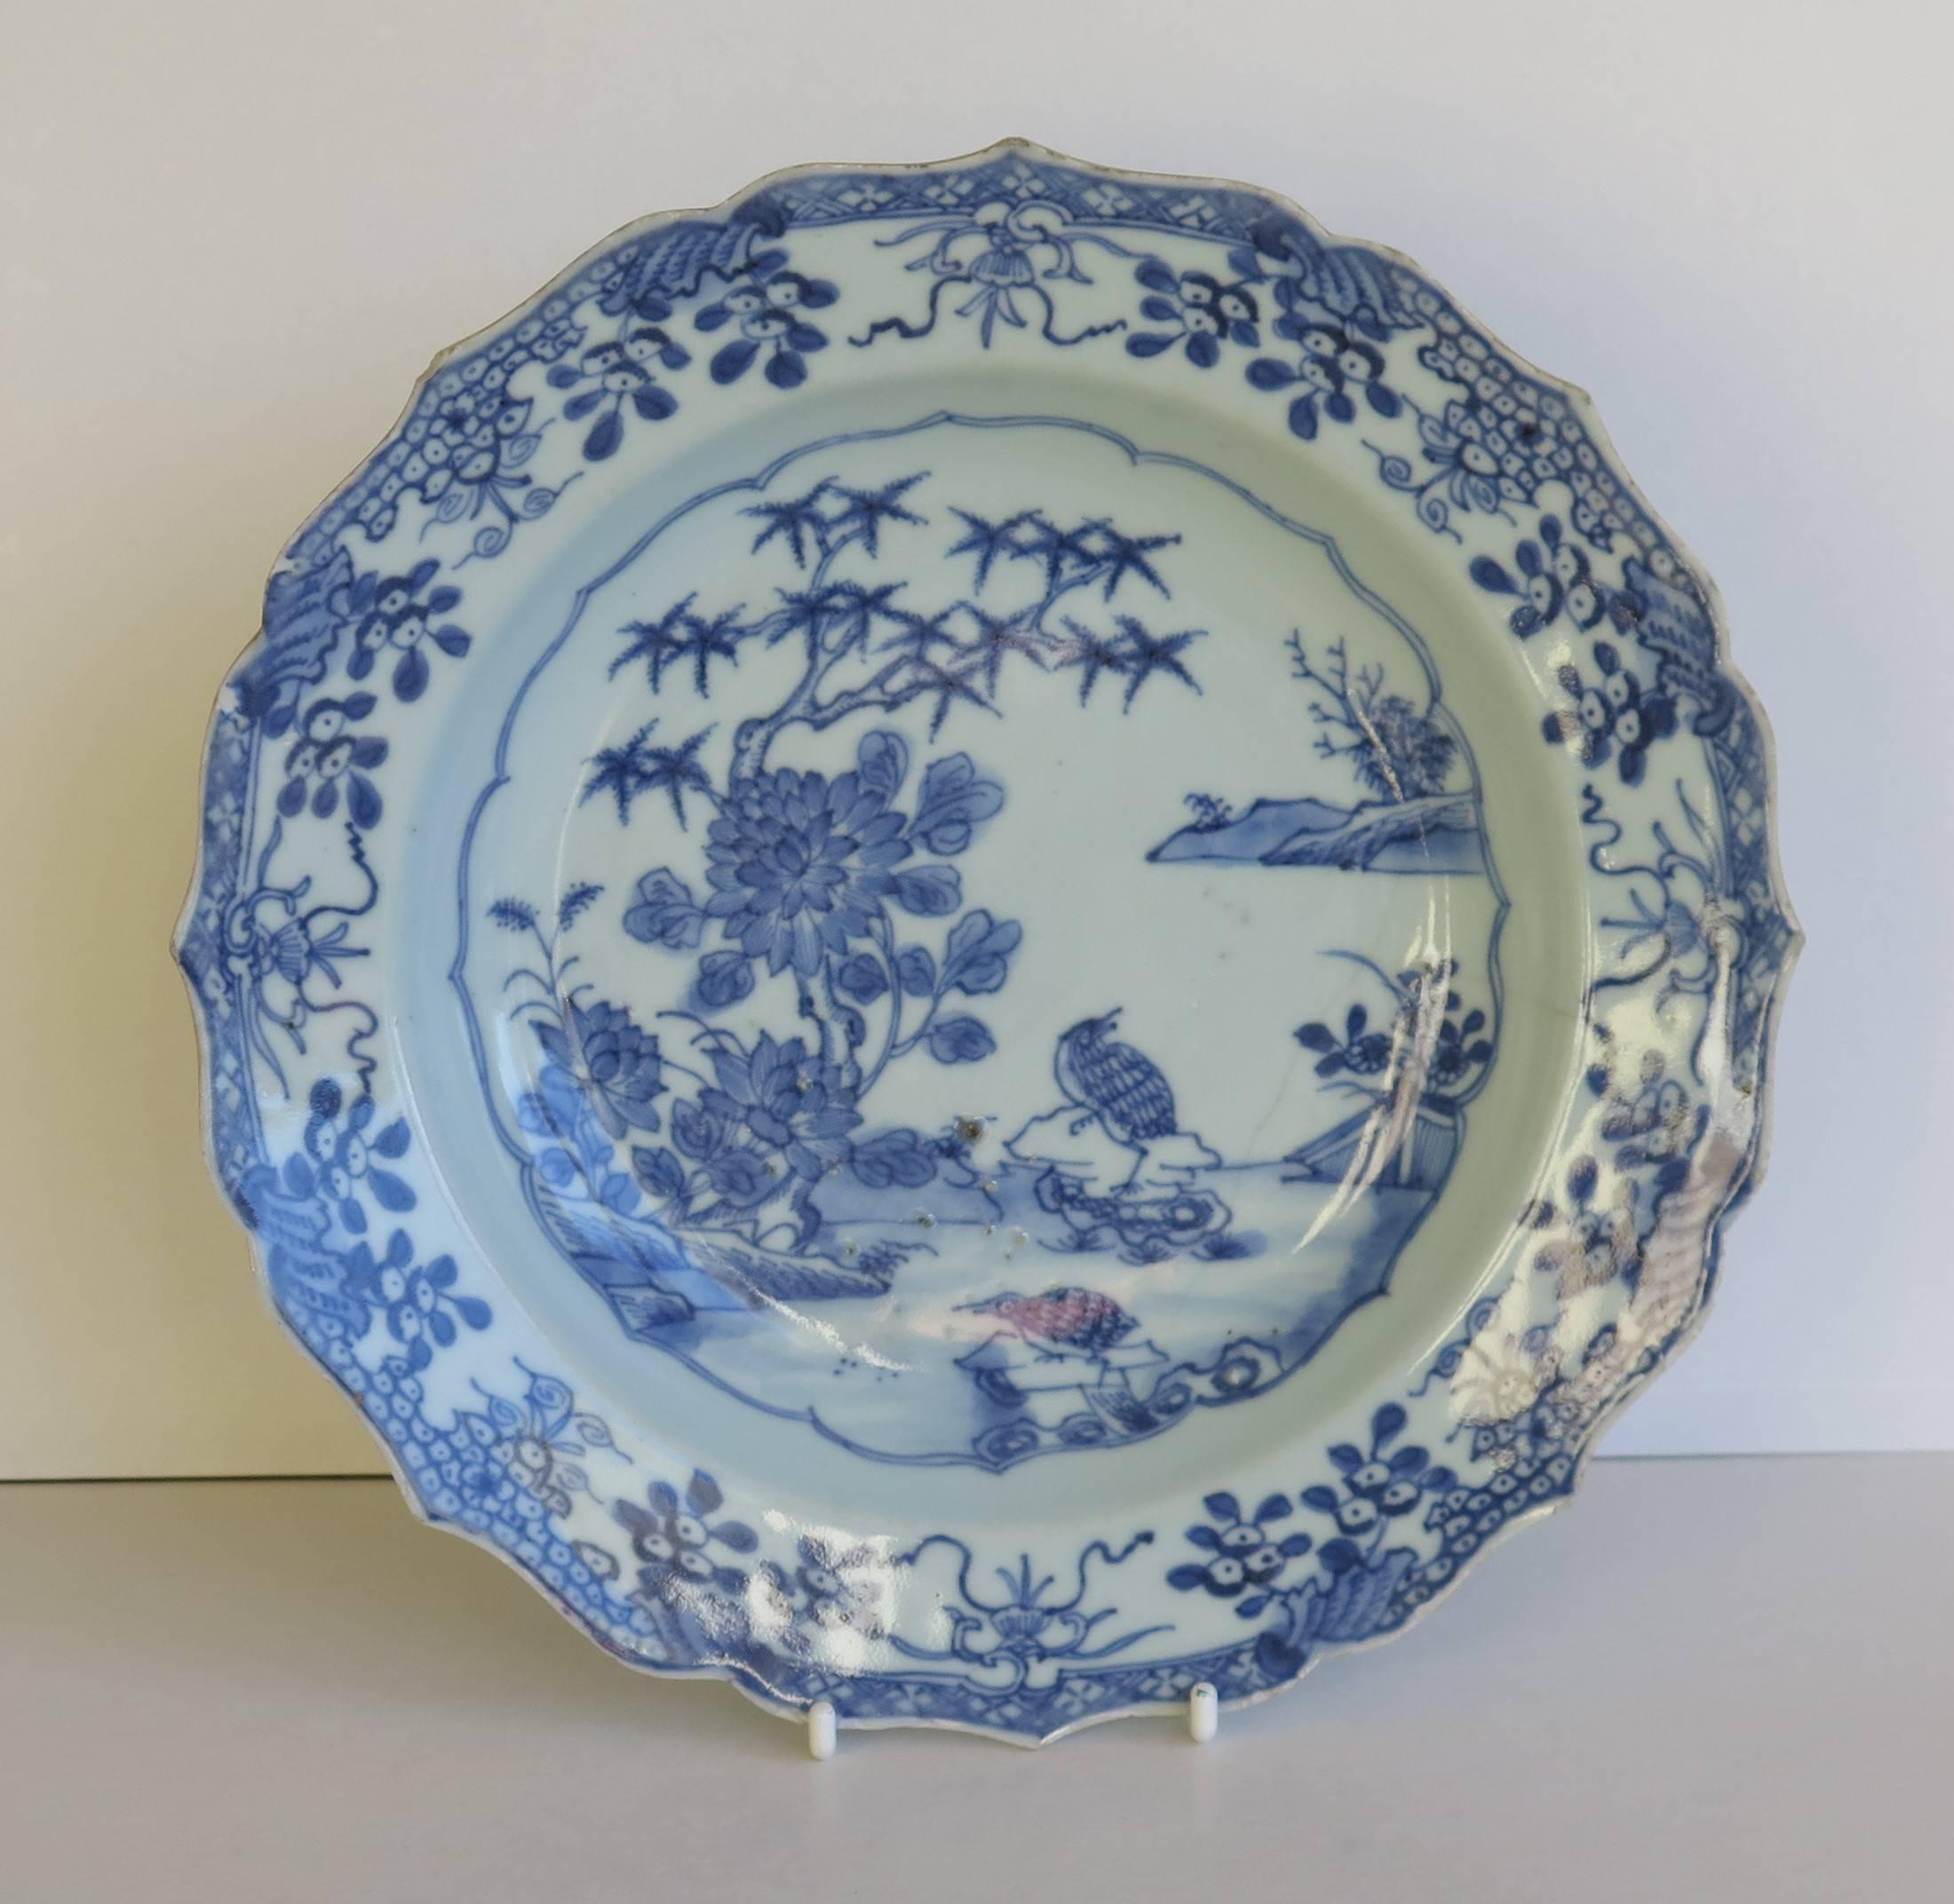 Blue and White Chinese Vase Of Chinese Porcelain Plate or Bowl Blue and White Woodland Birds Regarding Chinese Porcelain Plate or Bowl Blue and White Woodland Birds Circa 1770 at 1stdibs